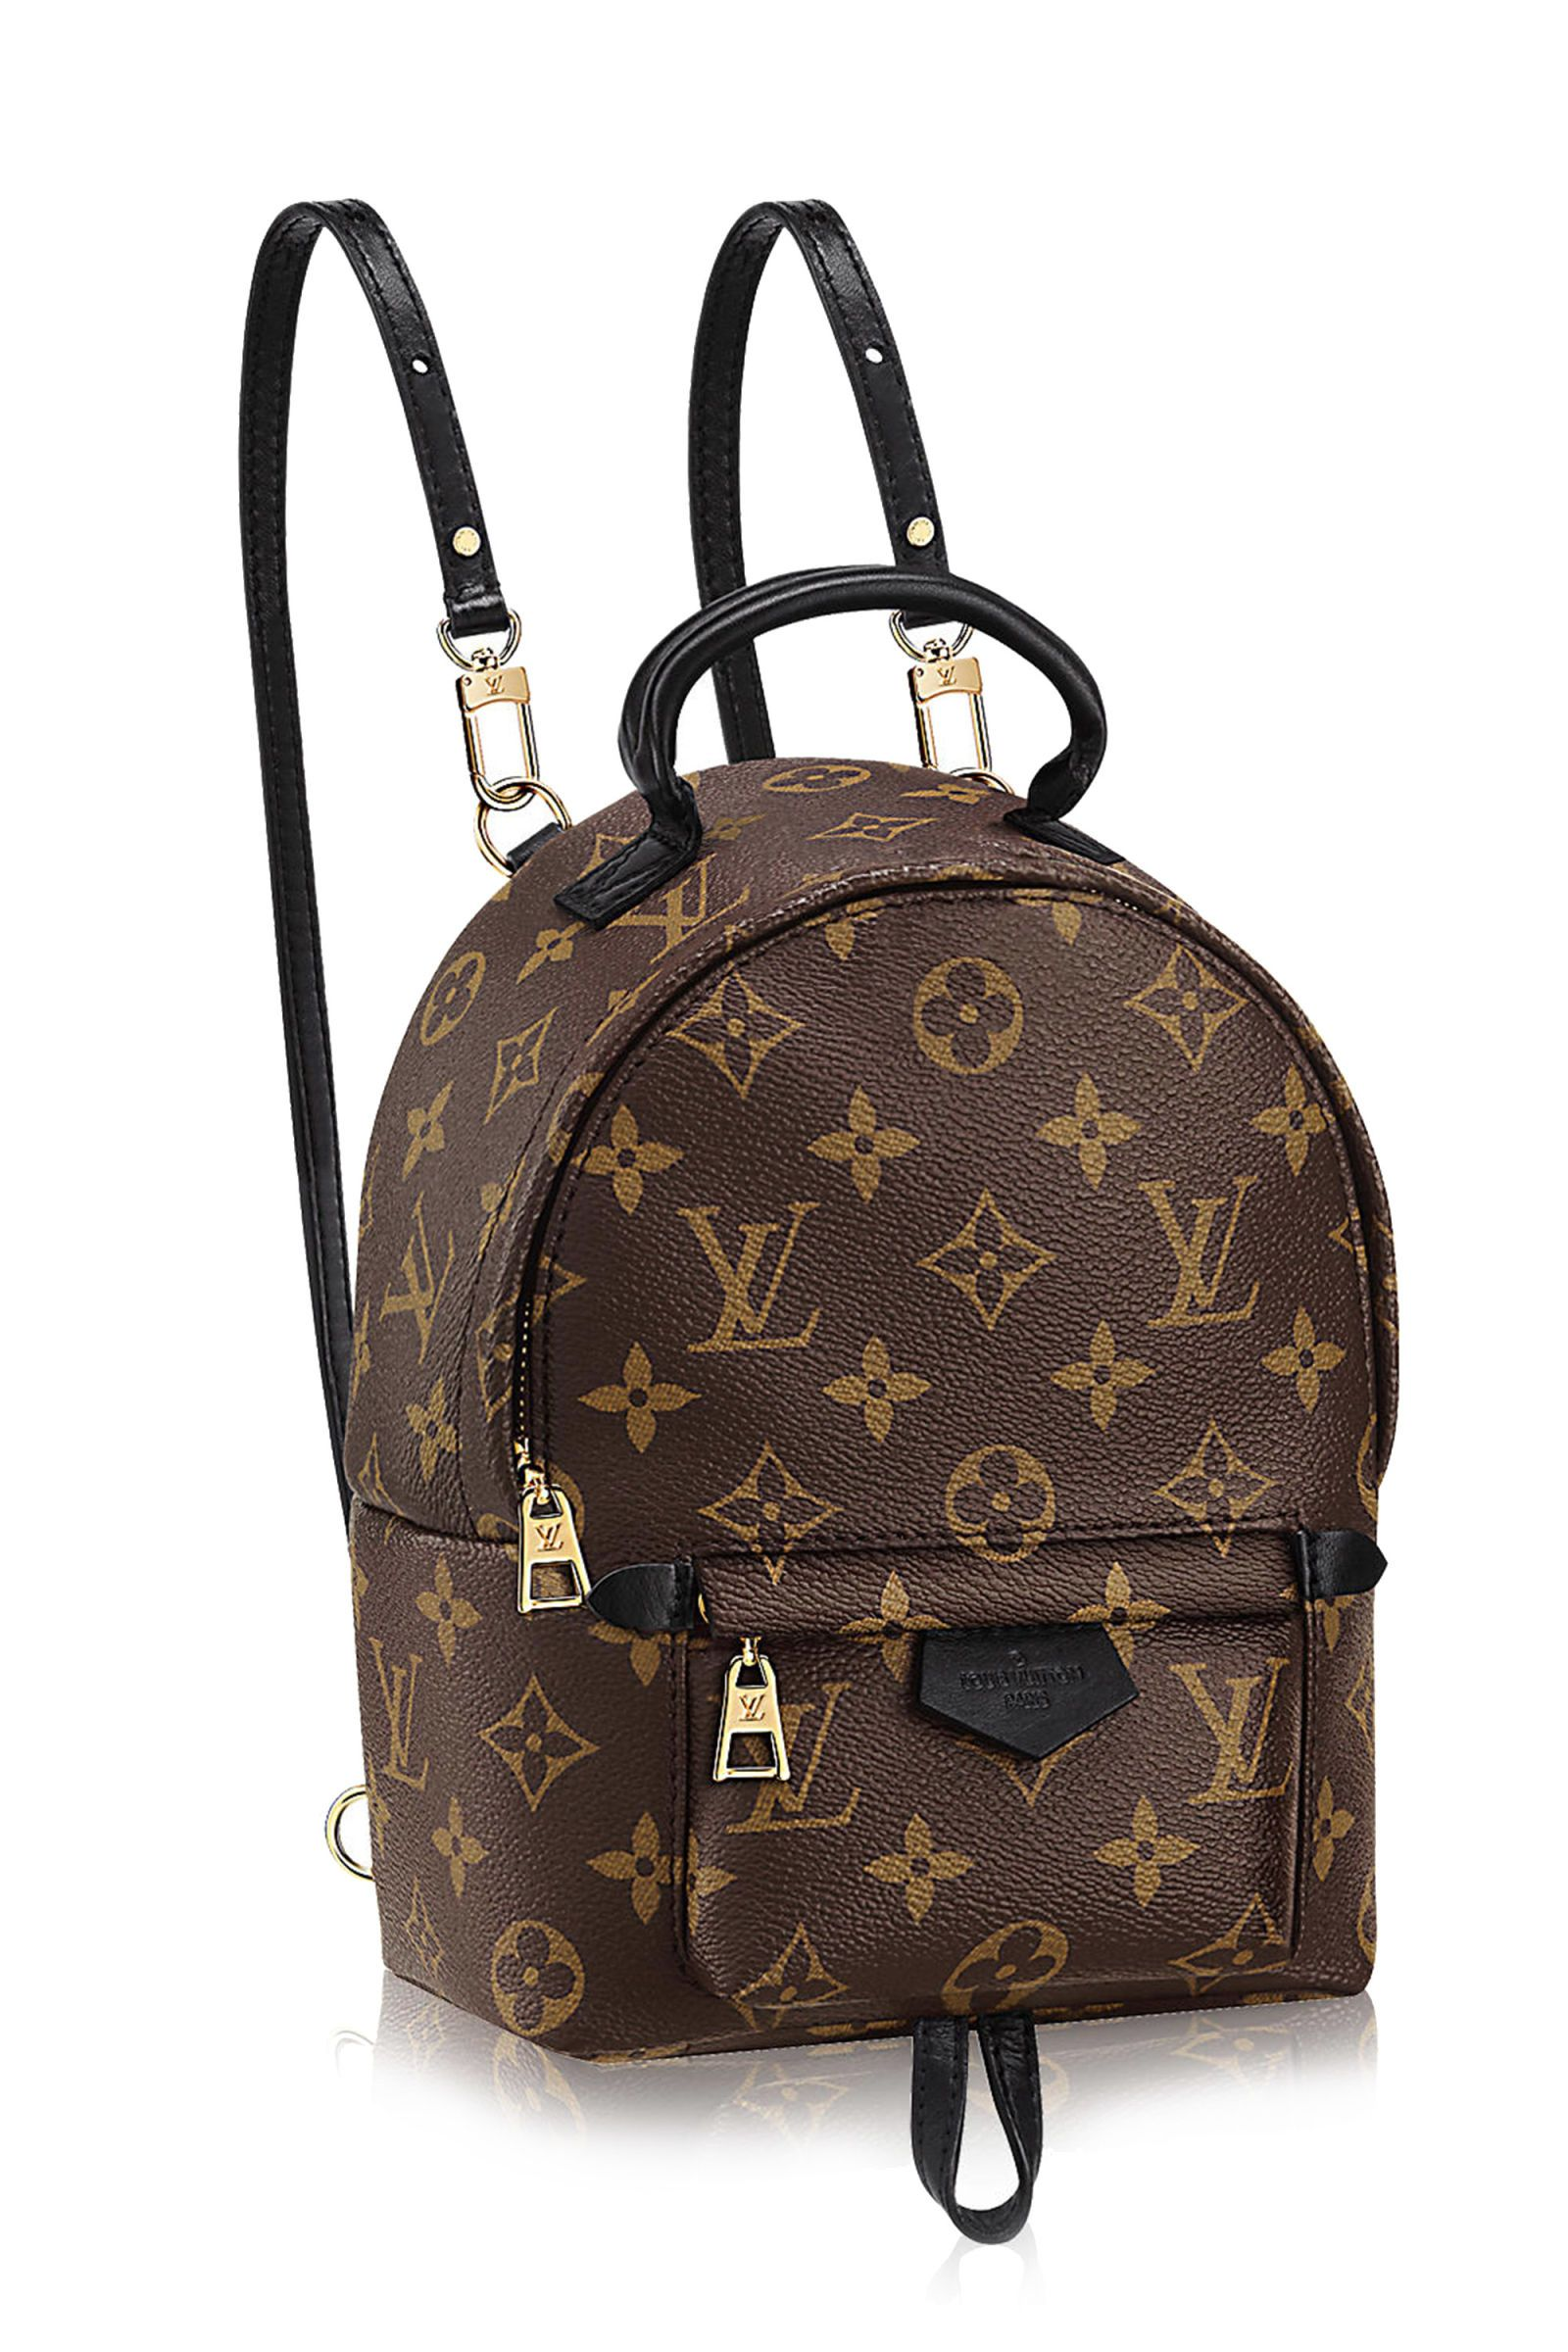 f7b5ad640061 The backpack gets an adult upgrade with this luxe option from Louis Vuitton.